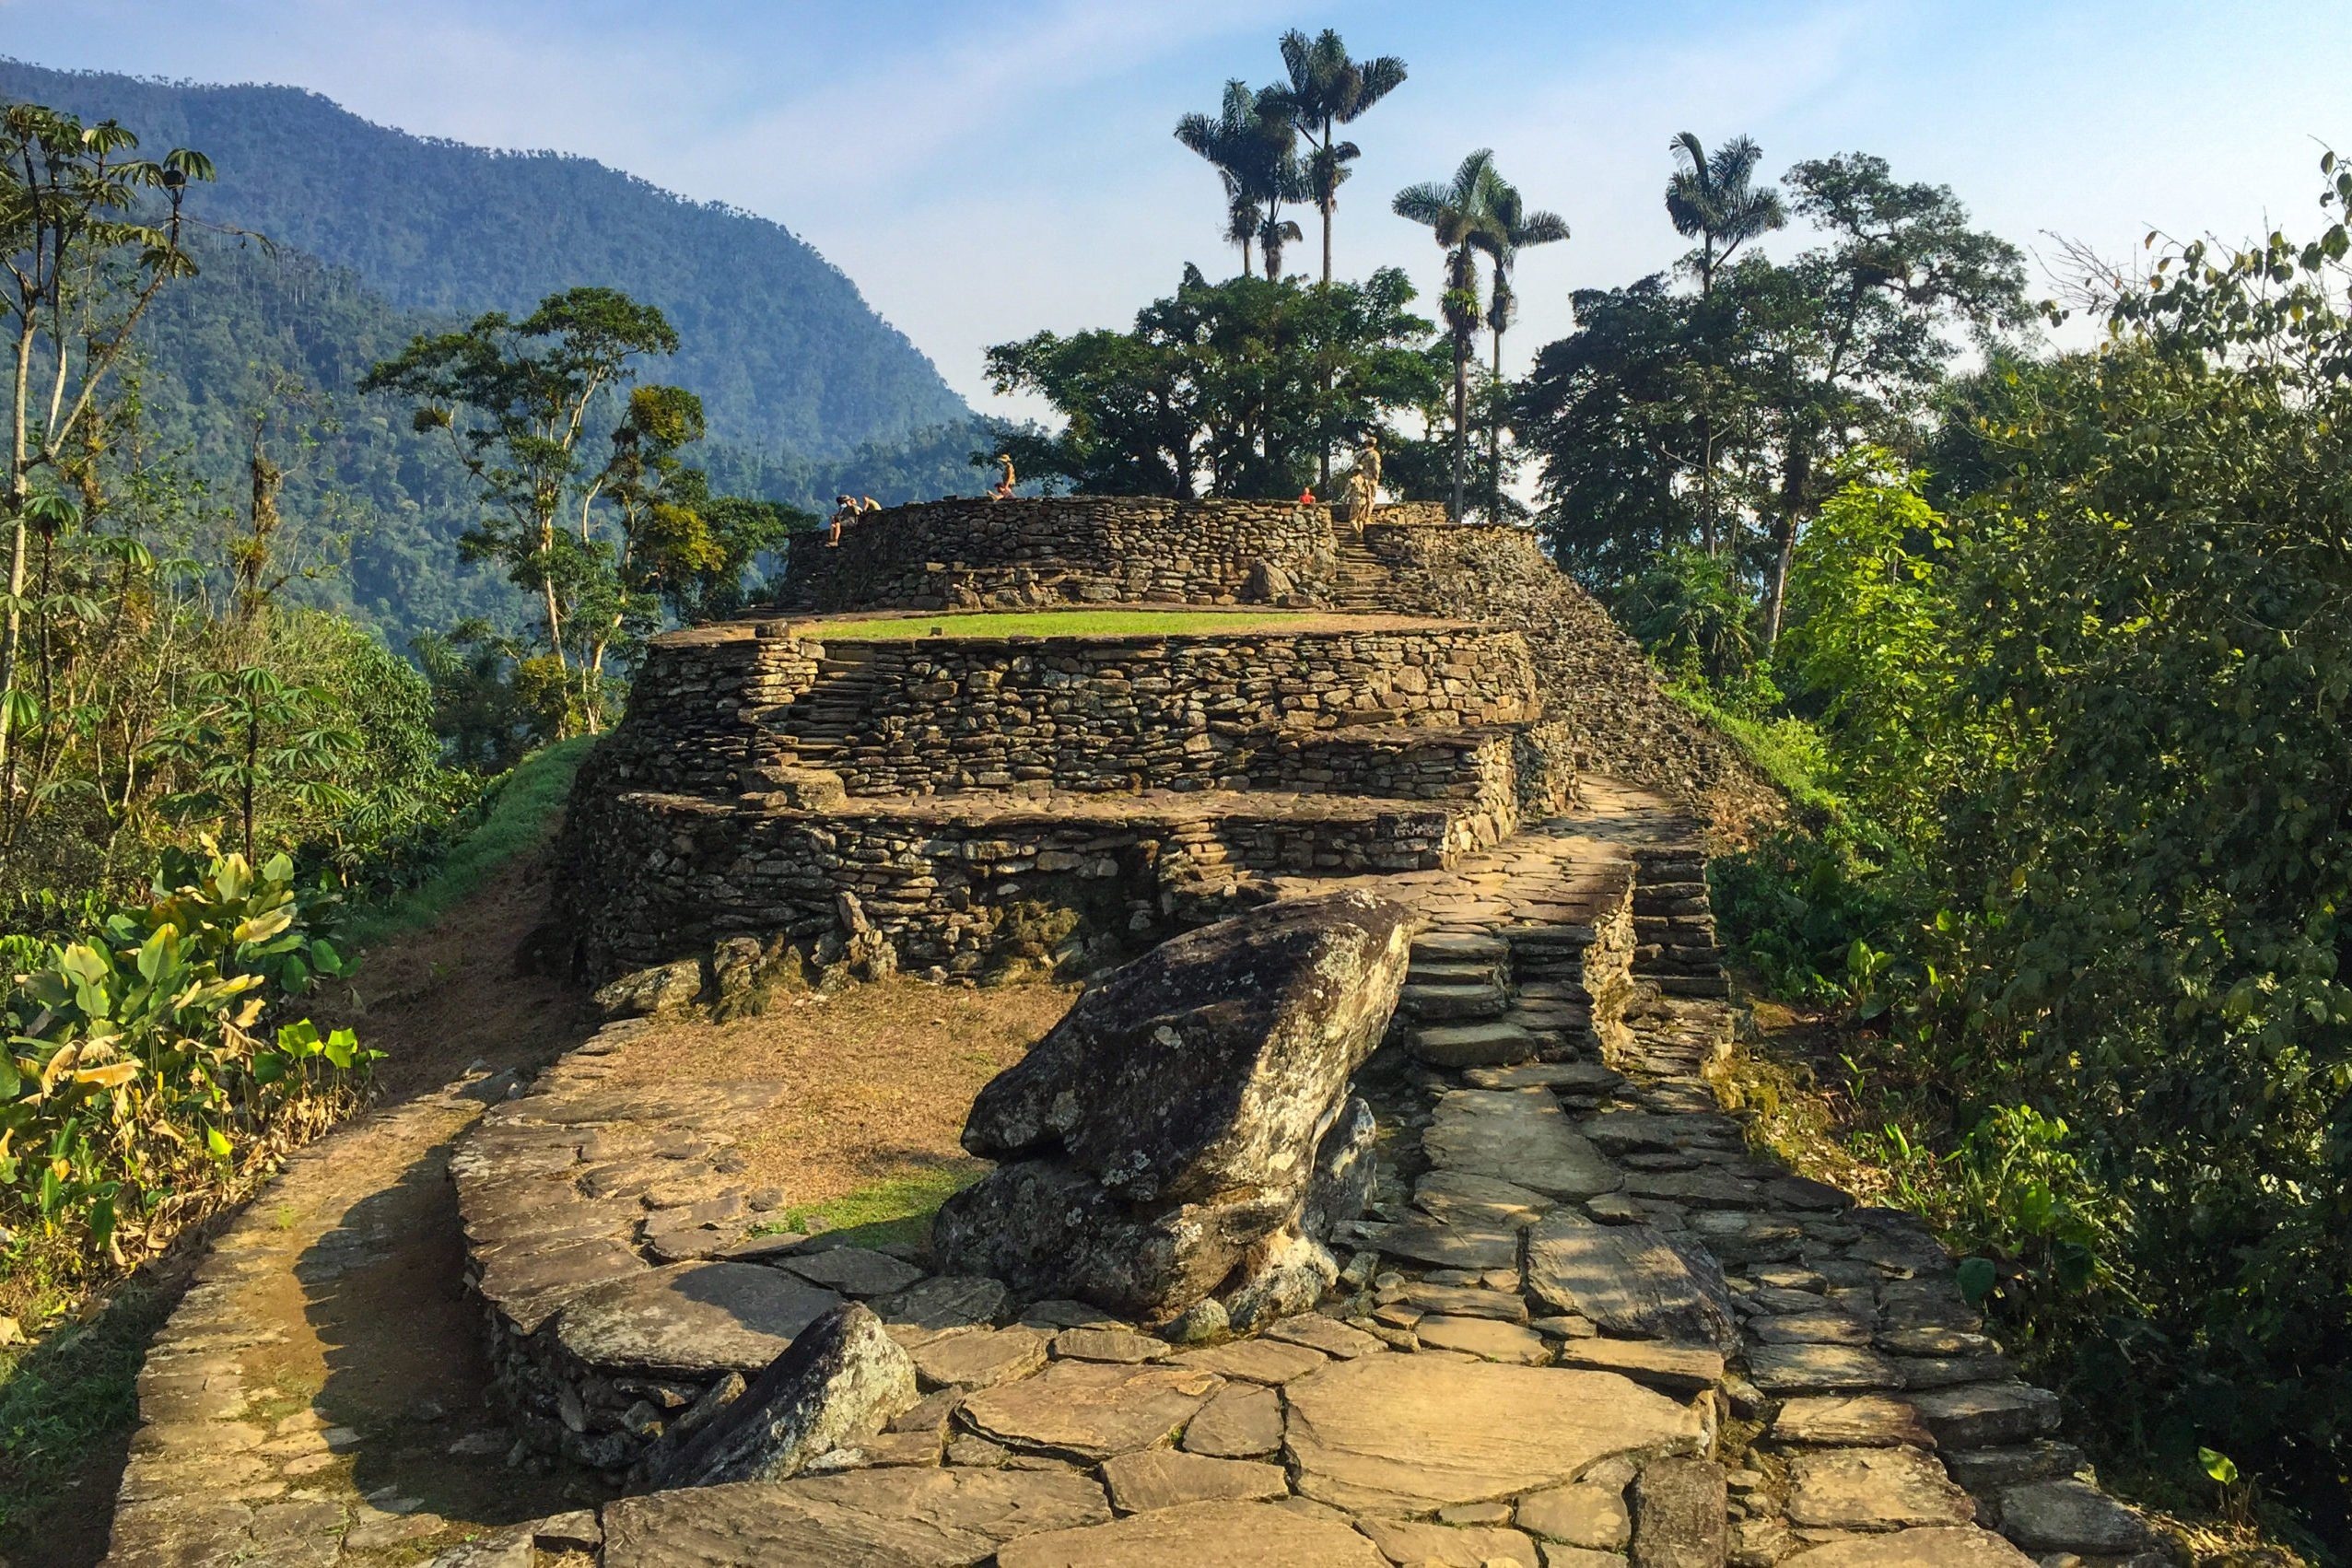 The Famous and Tourist Tayrona Park, the Ciudad Perdida (Lost City) in Magdalena / Colombia, full of Nature, Vegetation, History and Culture